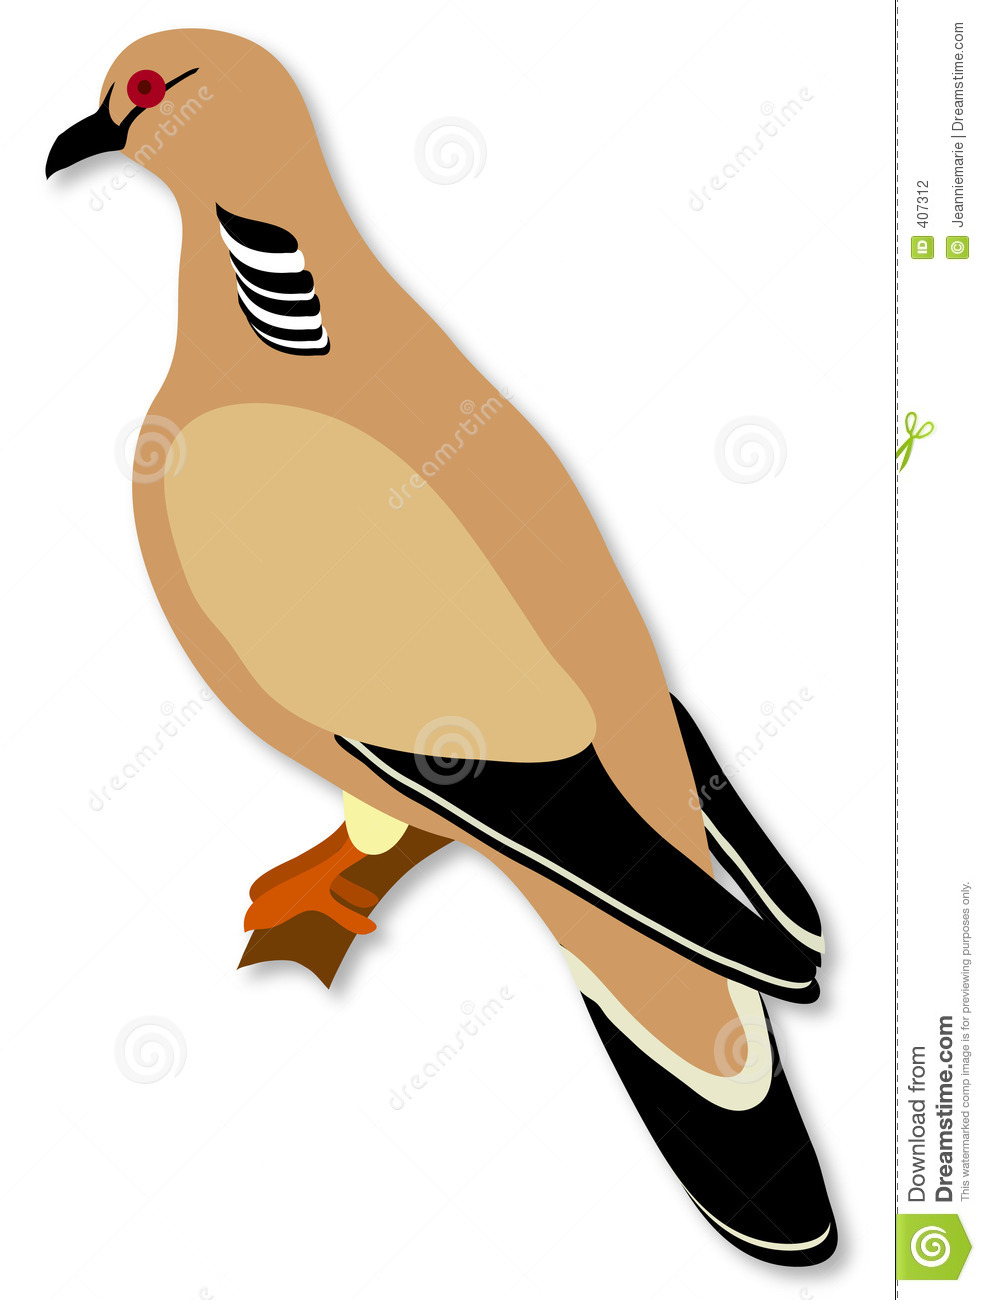 Turtle Dove clipart #14, Download drawings